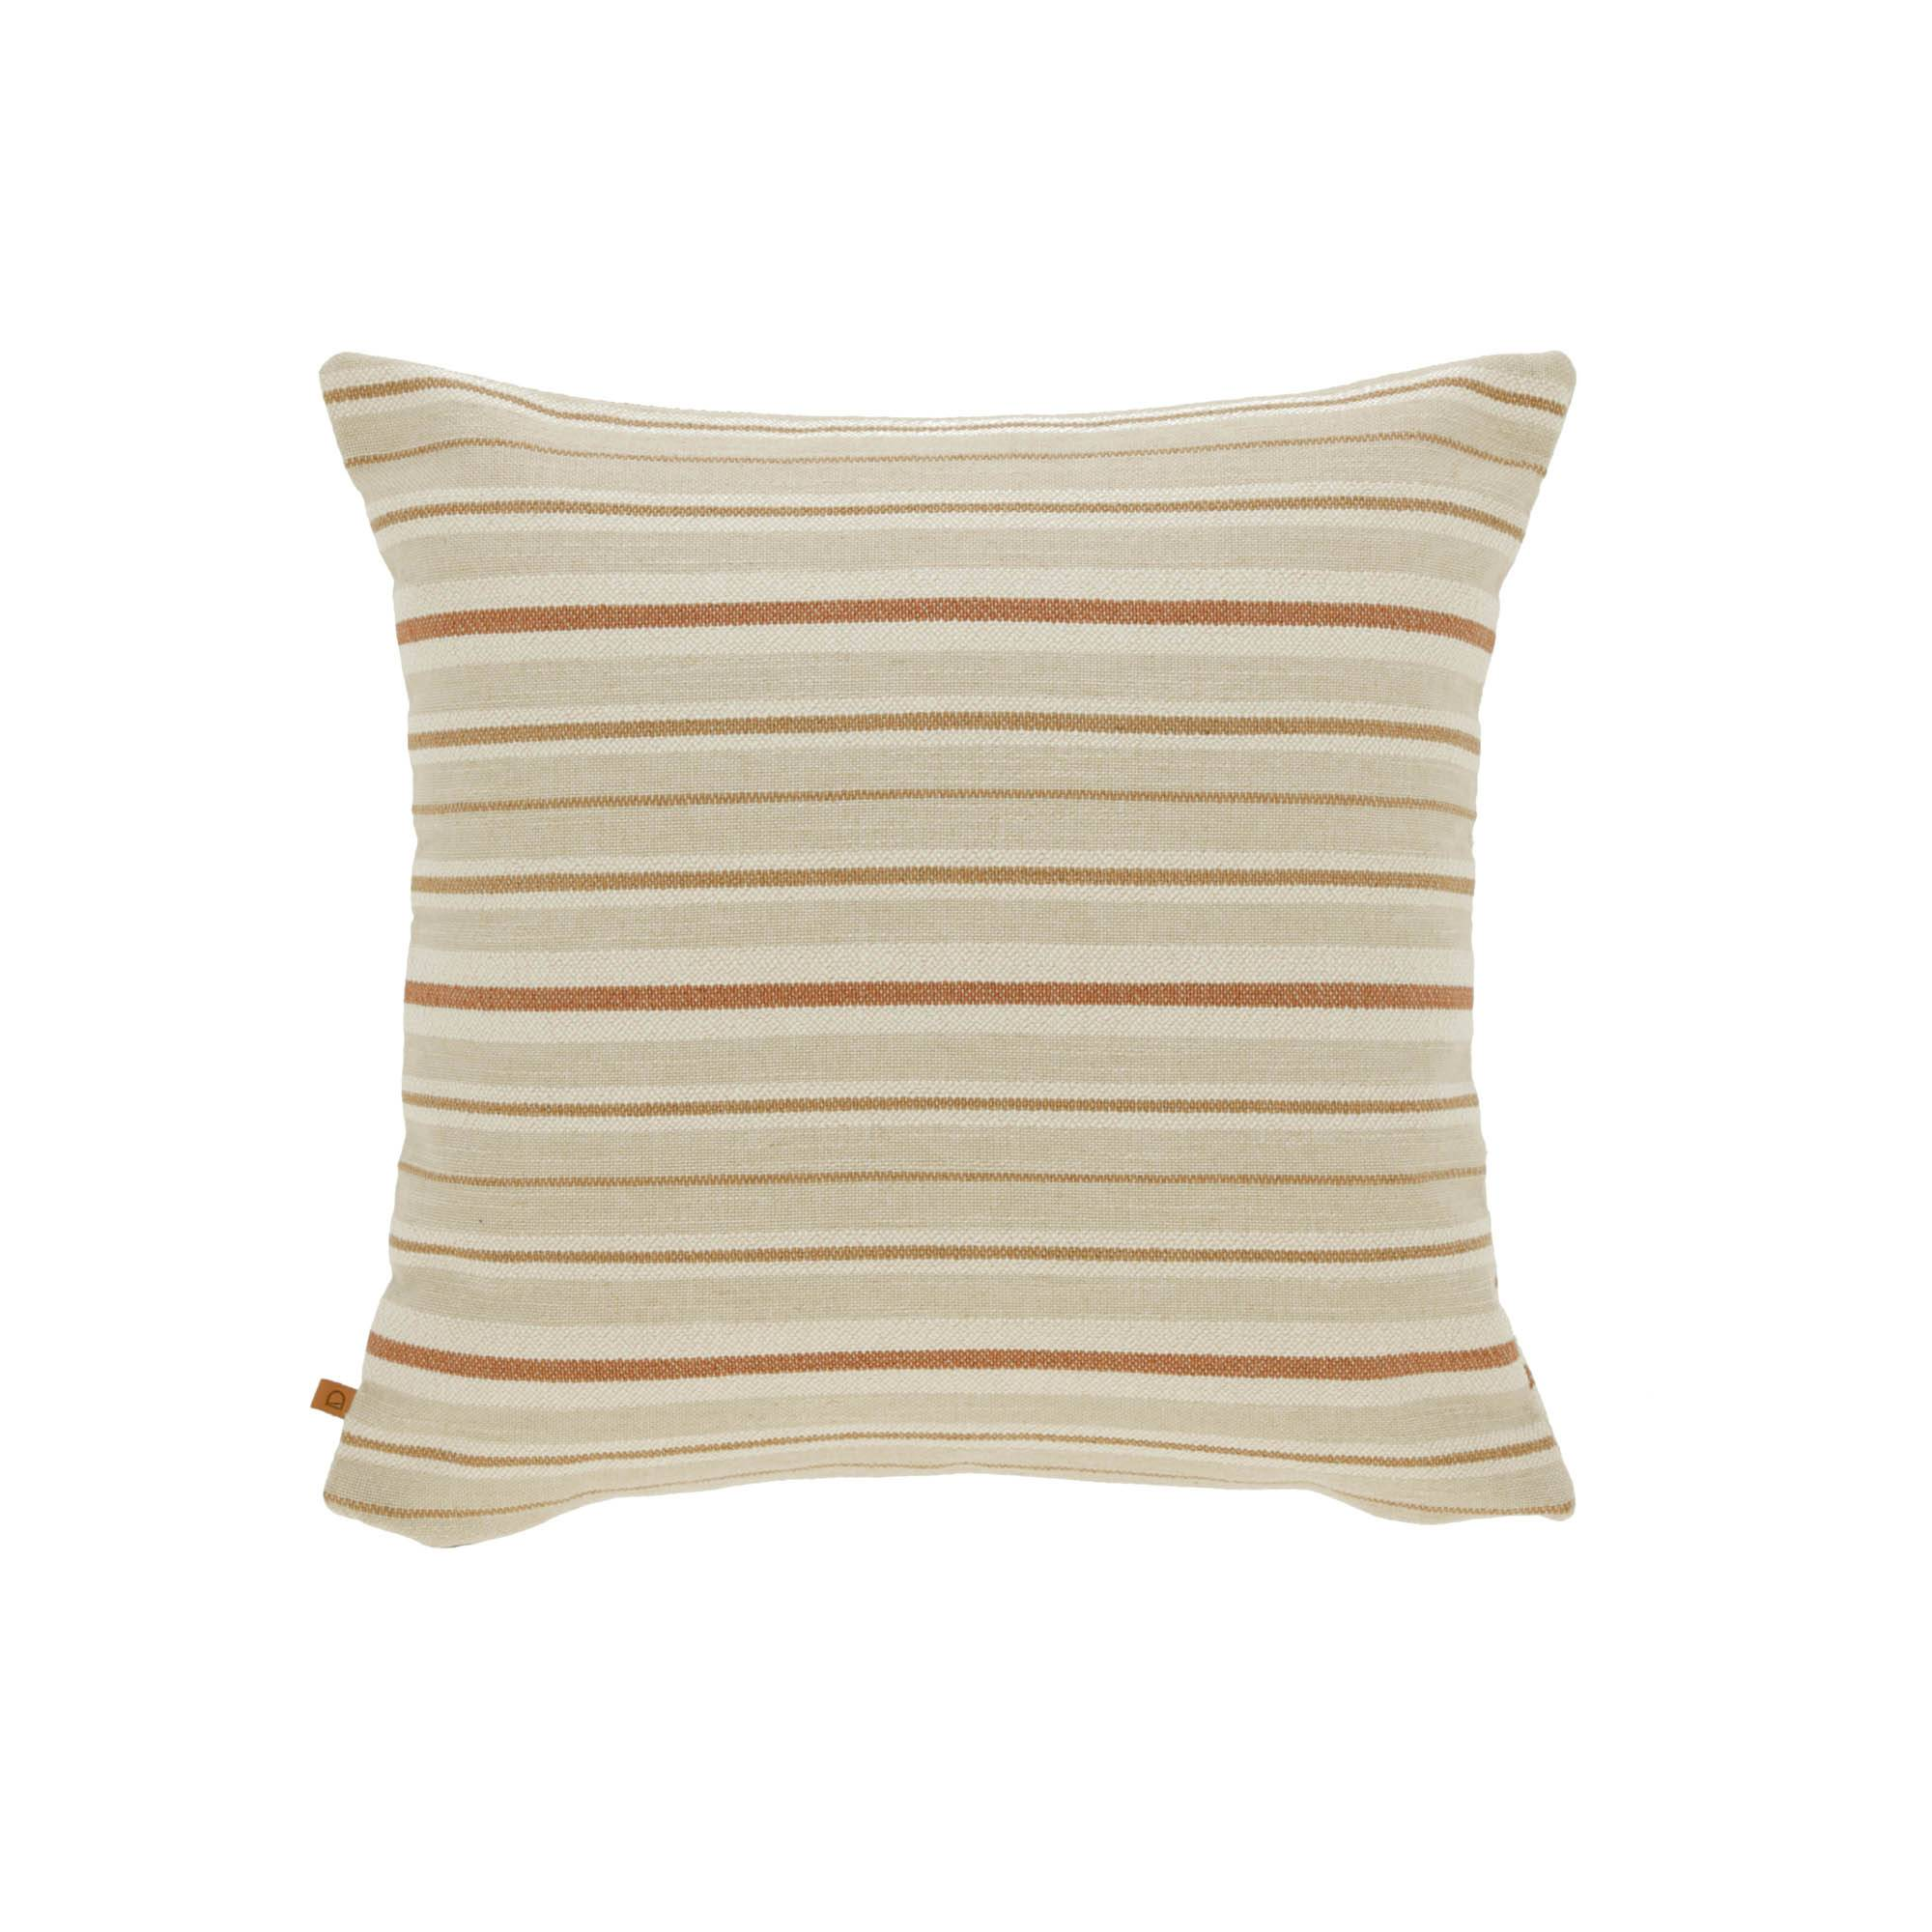 Kave Home Fodera cuscino Sydelle 45 x 45 cm a righe beige